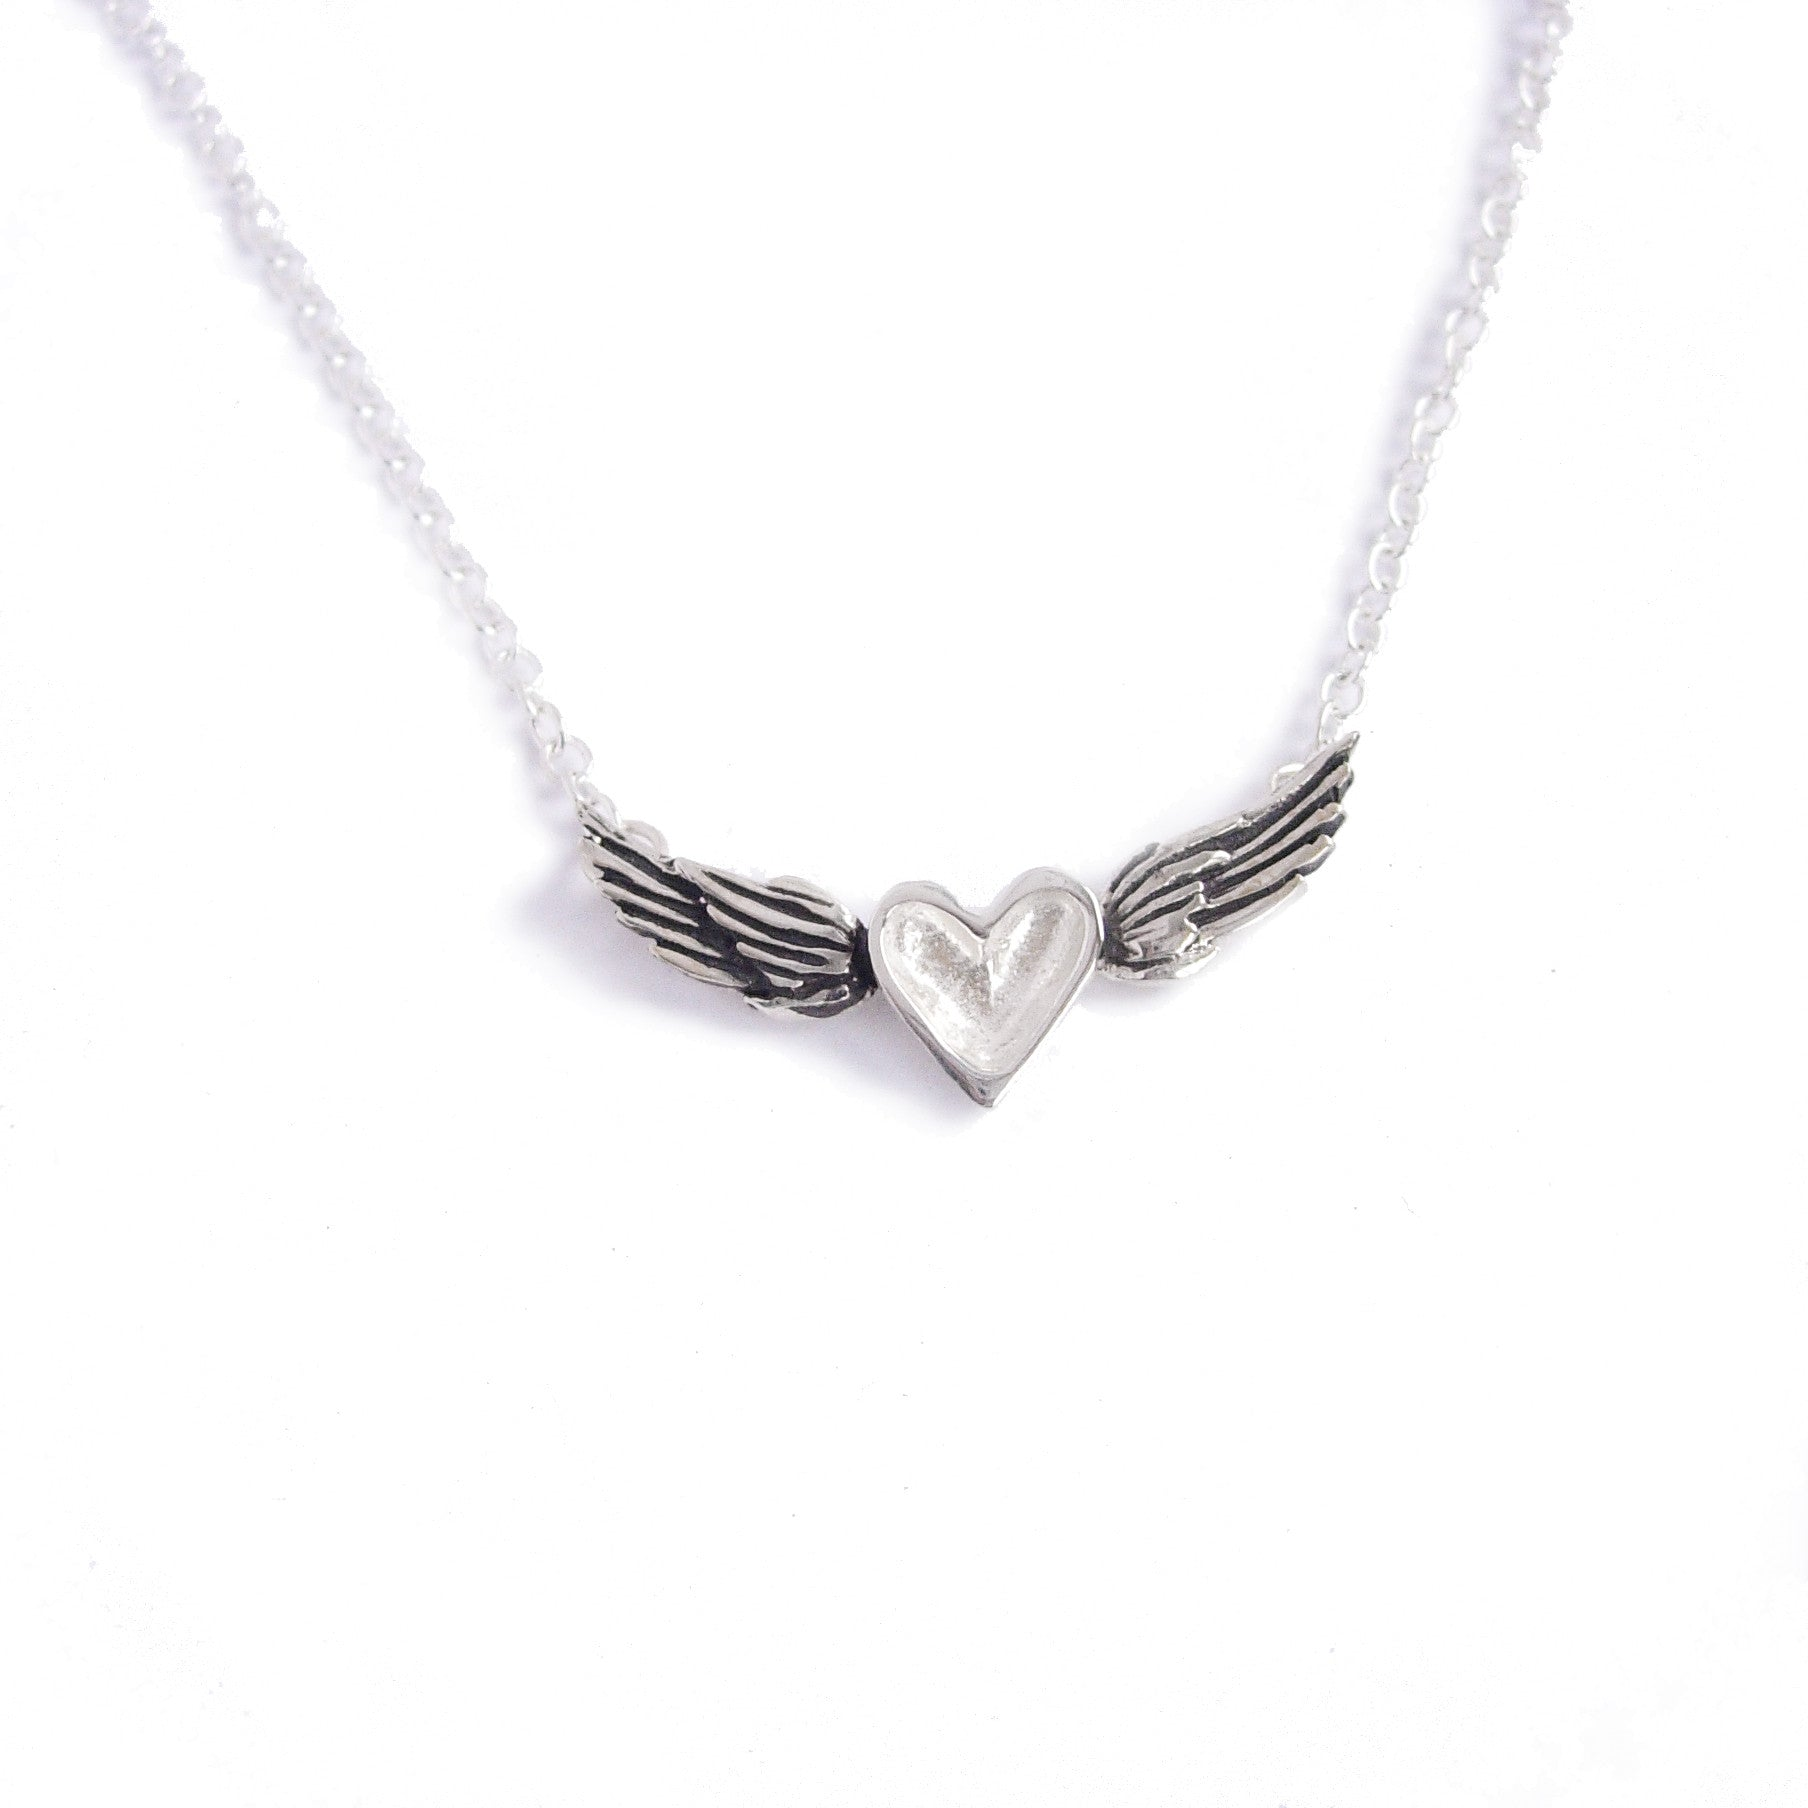 number mini white pendant webstore swinging necklaces heart category necklace gold jewellery l style h samuel product